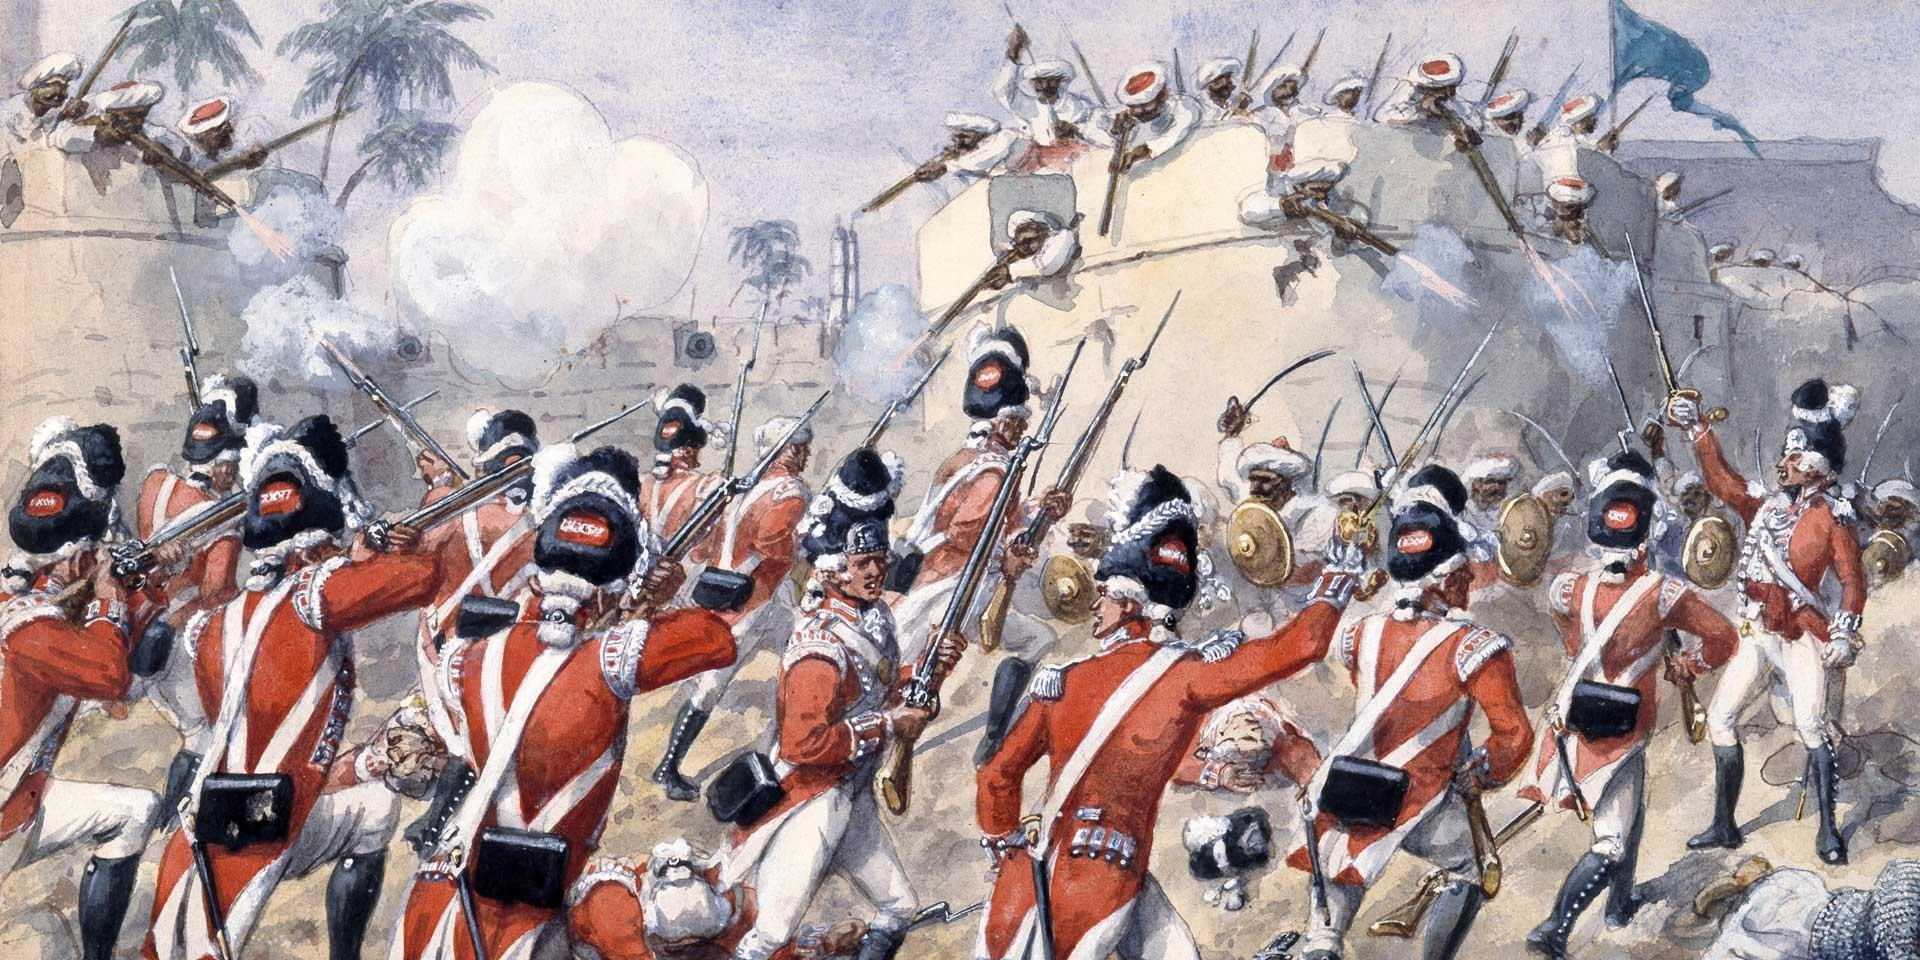 Grenadiers of the 76th Foot at the Battle of Arakere, 15 May 1791